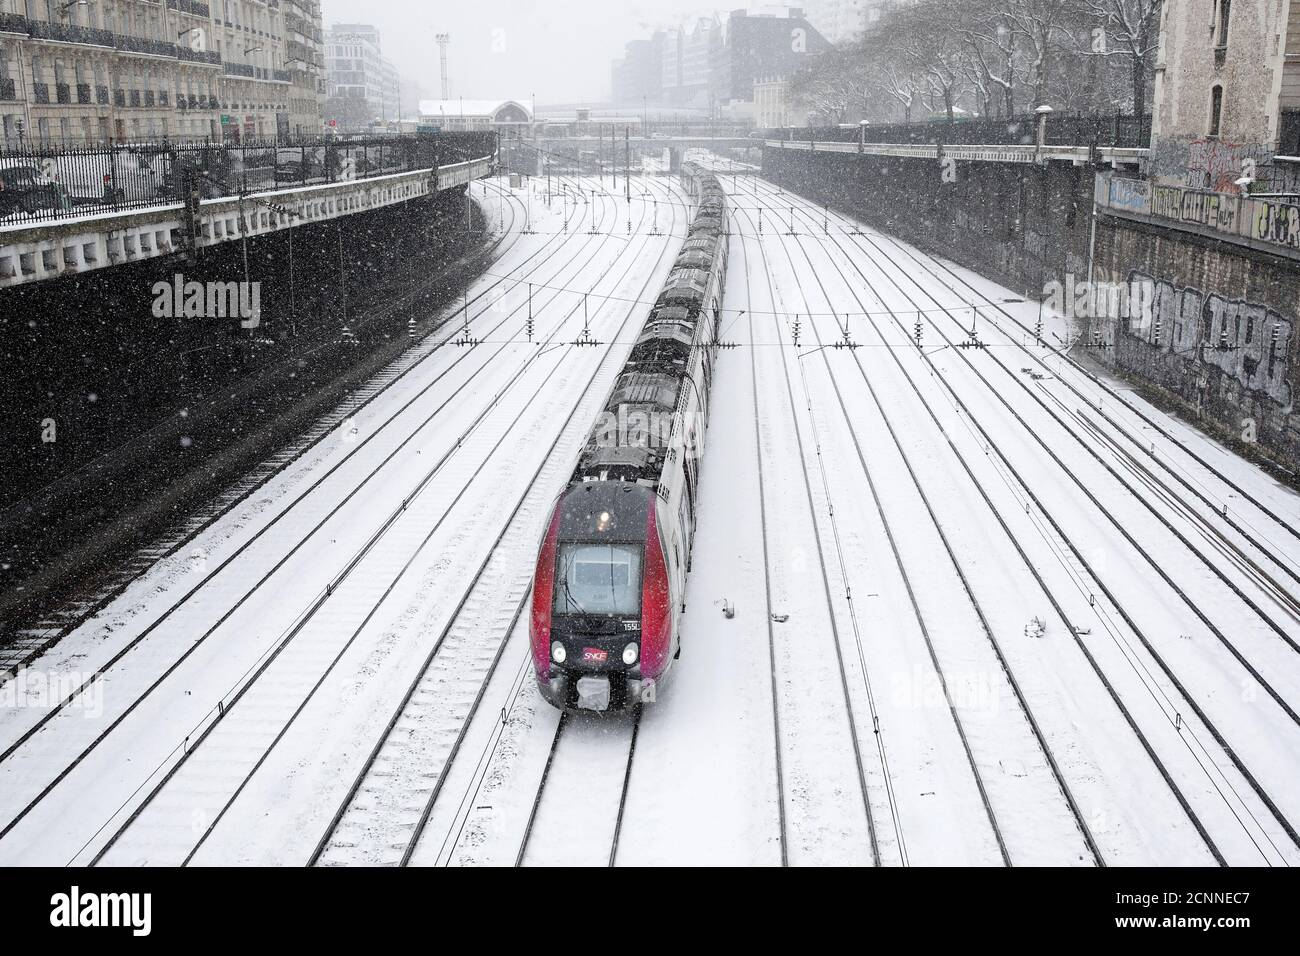 A train of French state-owned railway company SNCF and railroad tracks are seen under the falling snow at Pont-Cardinet railway station in Paris as winter weather bringing snow and freezing temperatures continues in France, February 9, 2018. REUTERS/Benoit Tessier Stock Photo